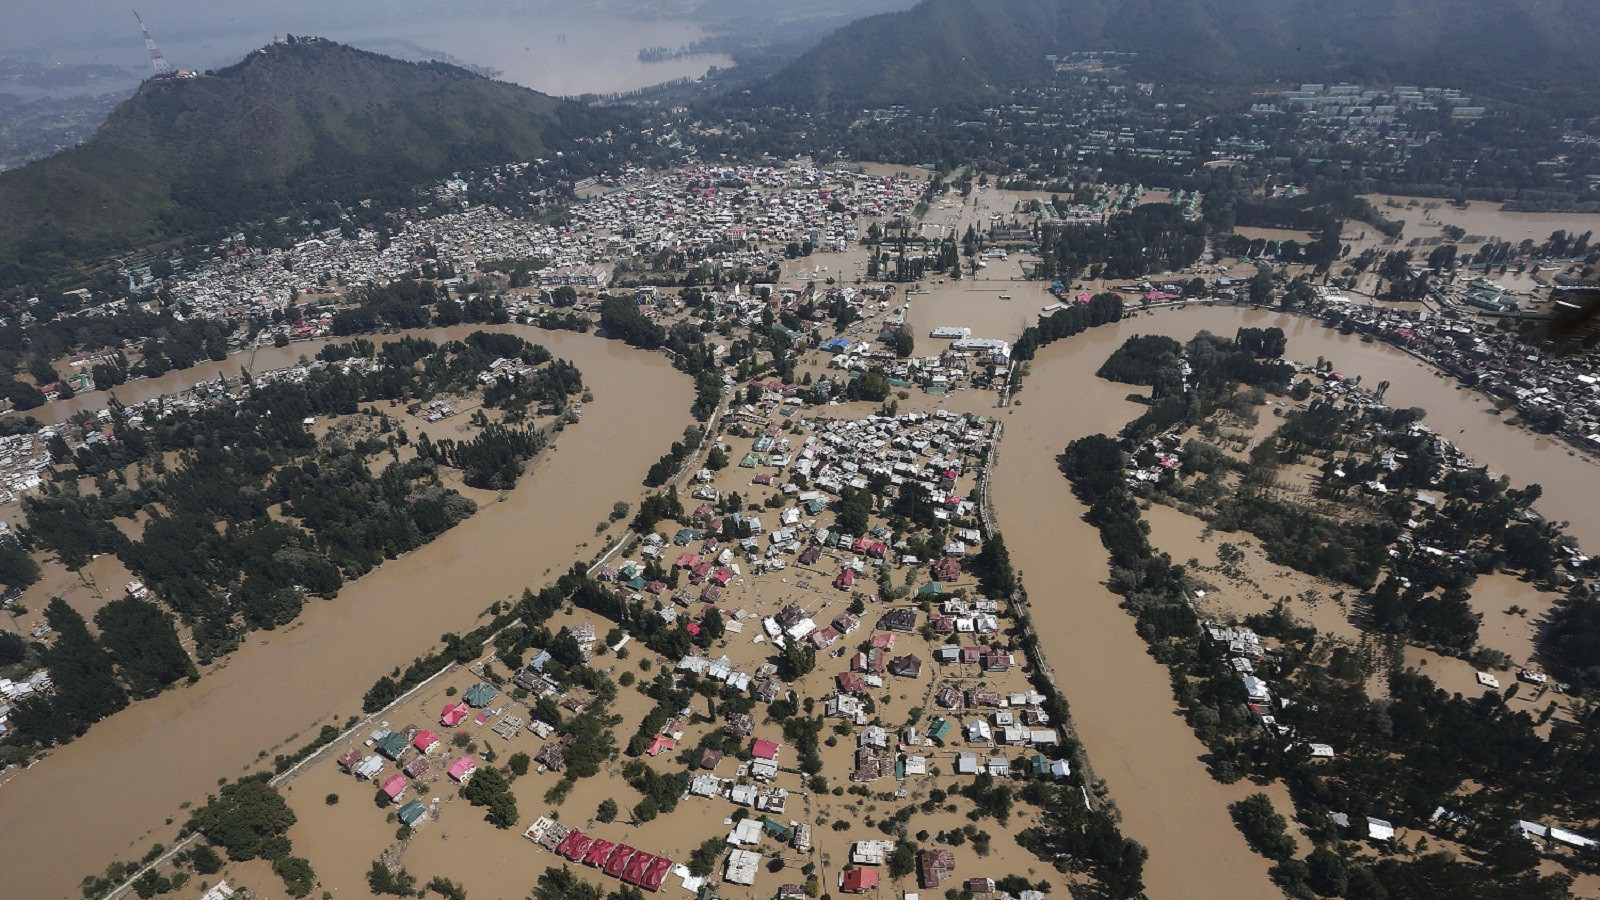 An aerial view taken from an Indian Air Force helicopter shows the flooded Srinagar city, September 11, 2014. Authorities in Kashmir collected the bodies of women and children floating in the streets on Thursday as anger mounted over what many survivors said was a bungled operation to help those caught in the region's worst flooding in 50 years.  REUTERS/Adnan Abidi (INDIAN-ADMINISTERED KASHMIR - Tags: DISASTER CITYSCAPE ENVIRONMENT TPX IMAGES OF THE DAY) - RTR45UII